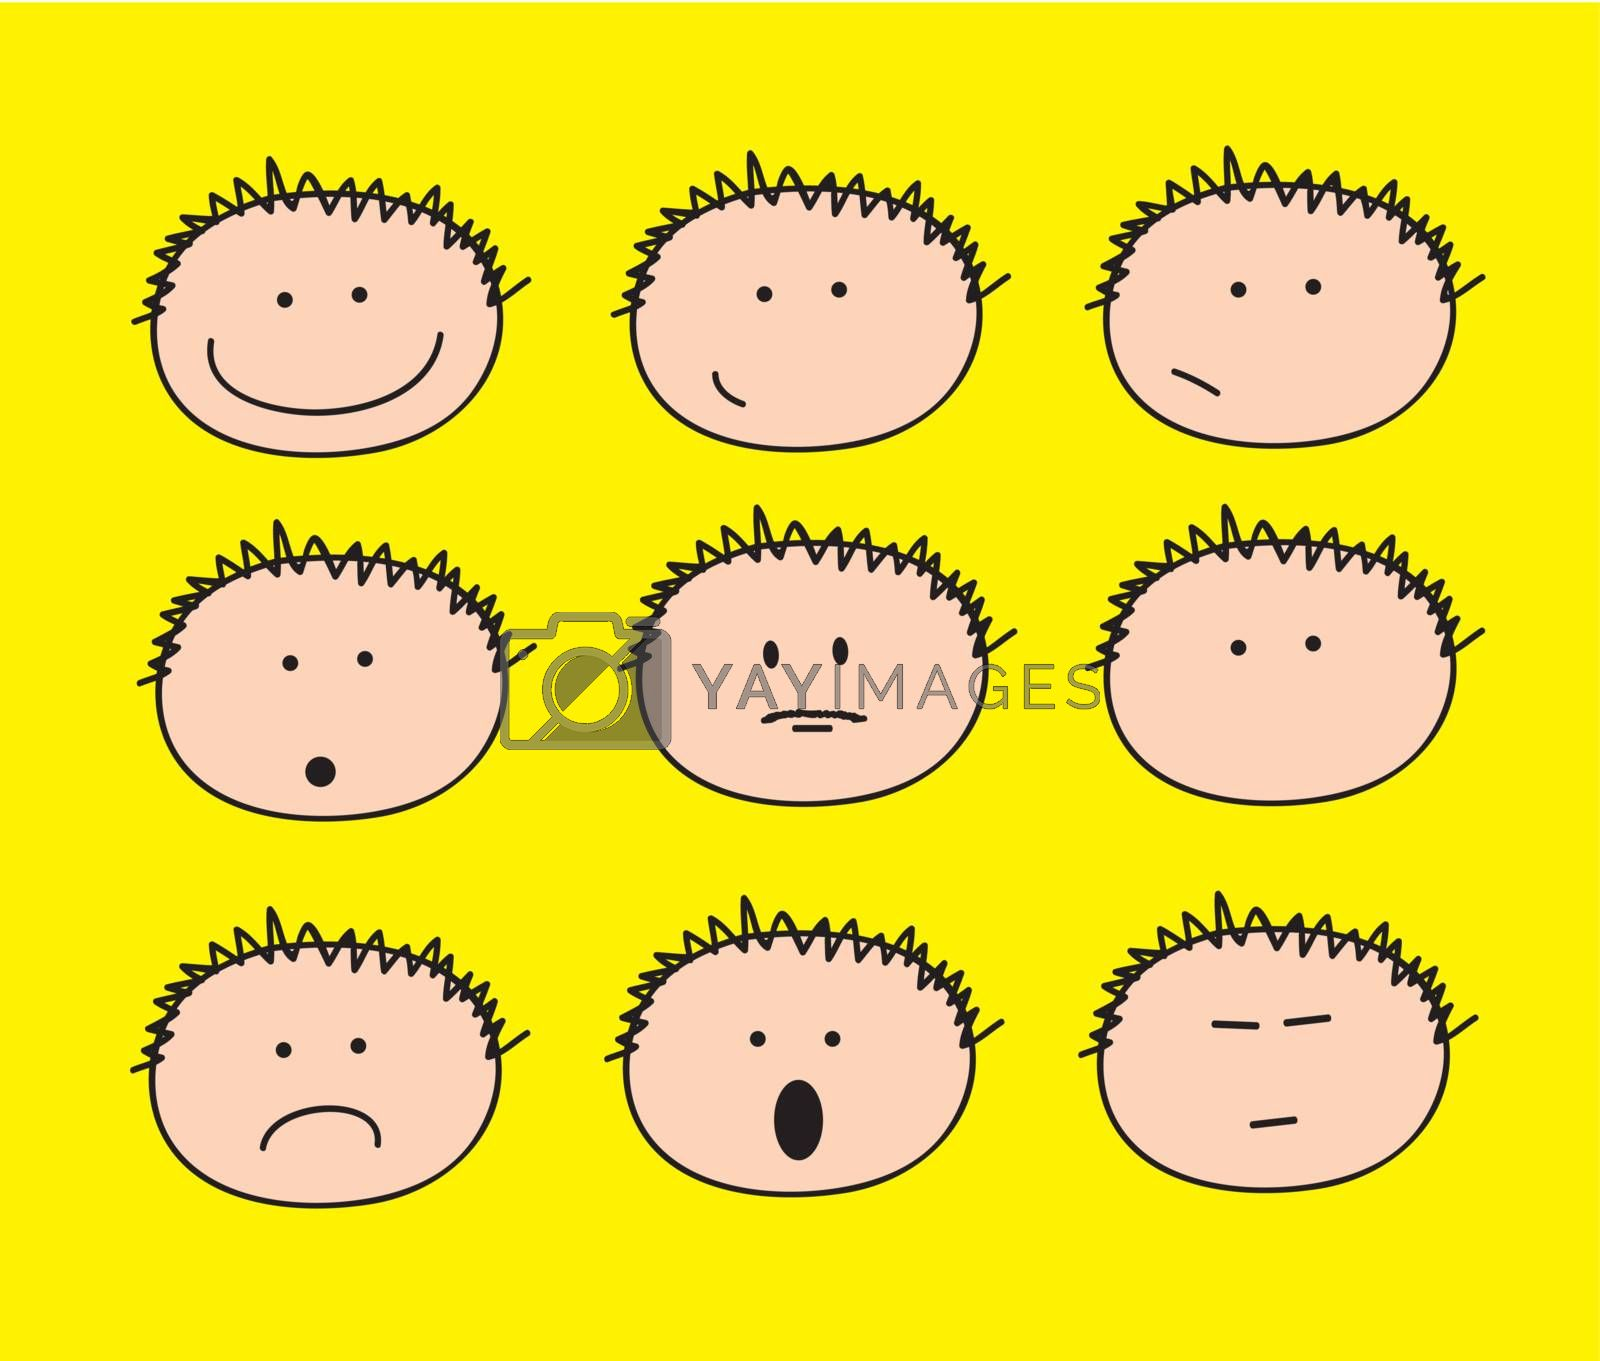 children's faces with different gestures over yellow background